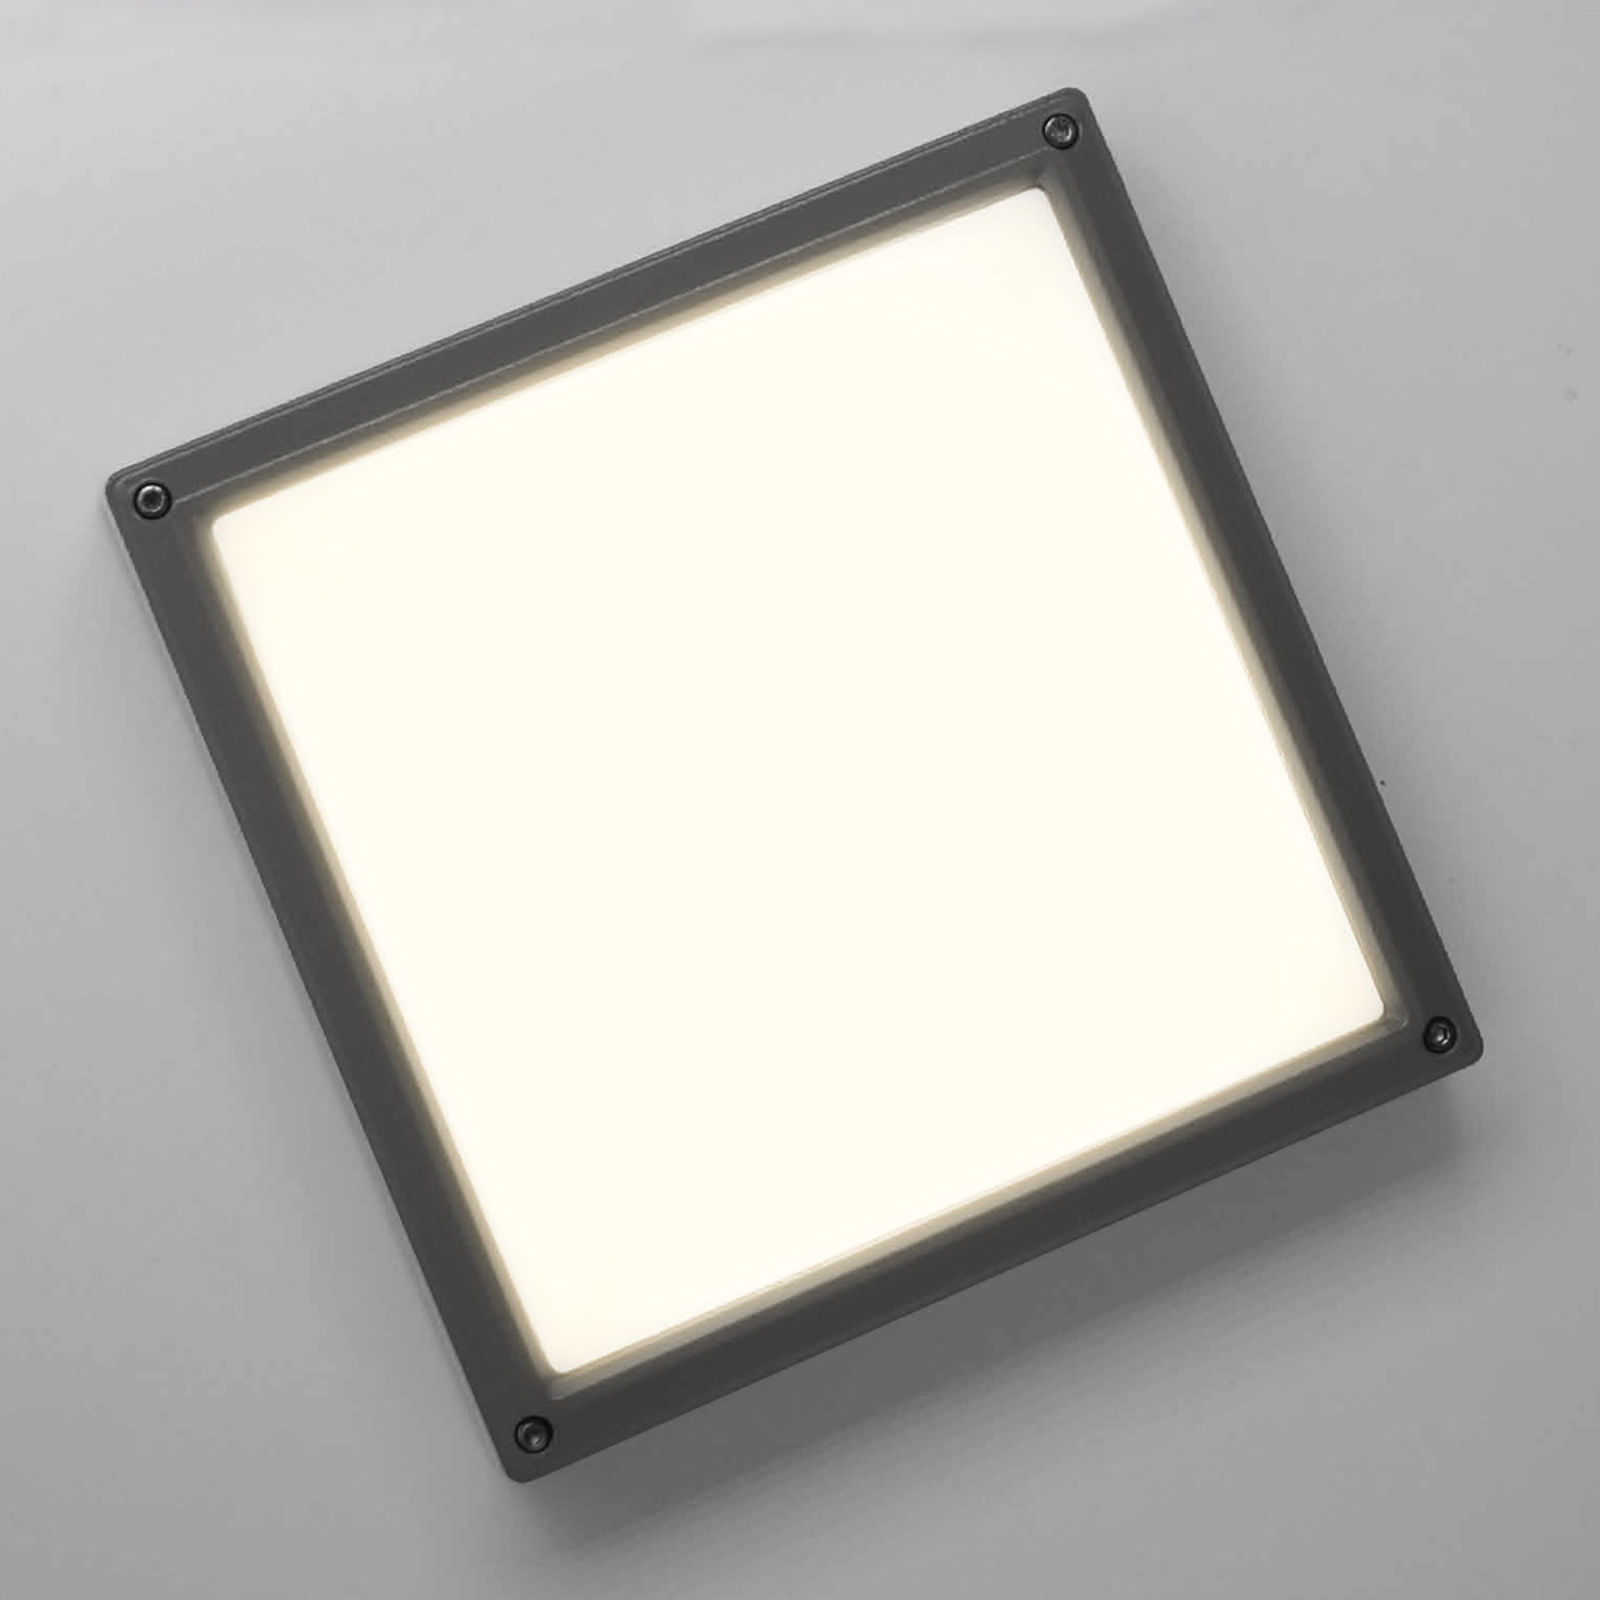 SUN 11 LED-væglampe 13 W antracit 3K